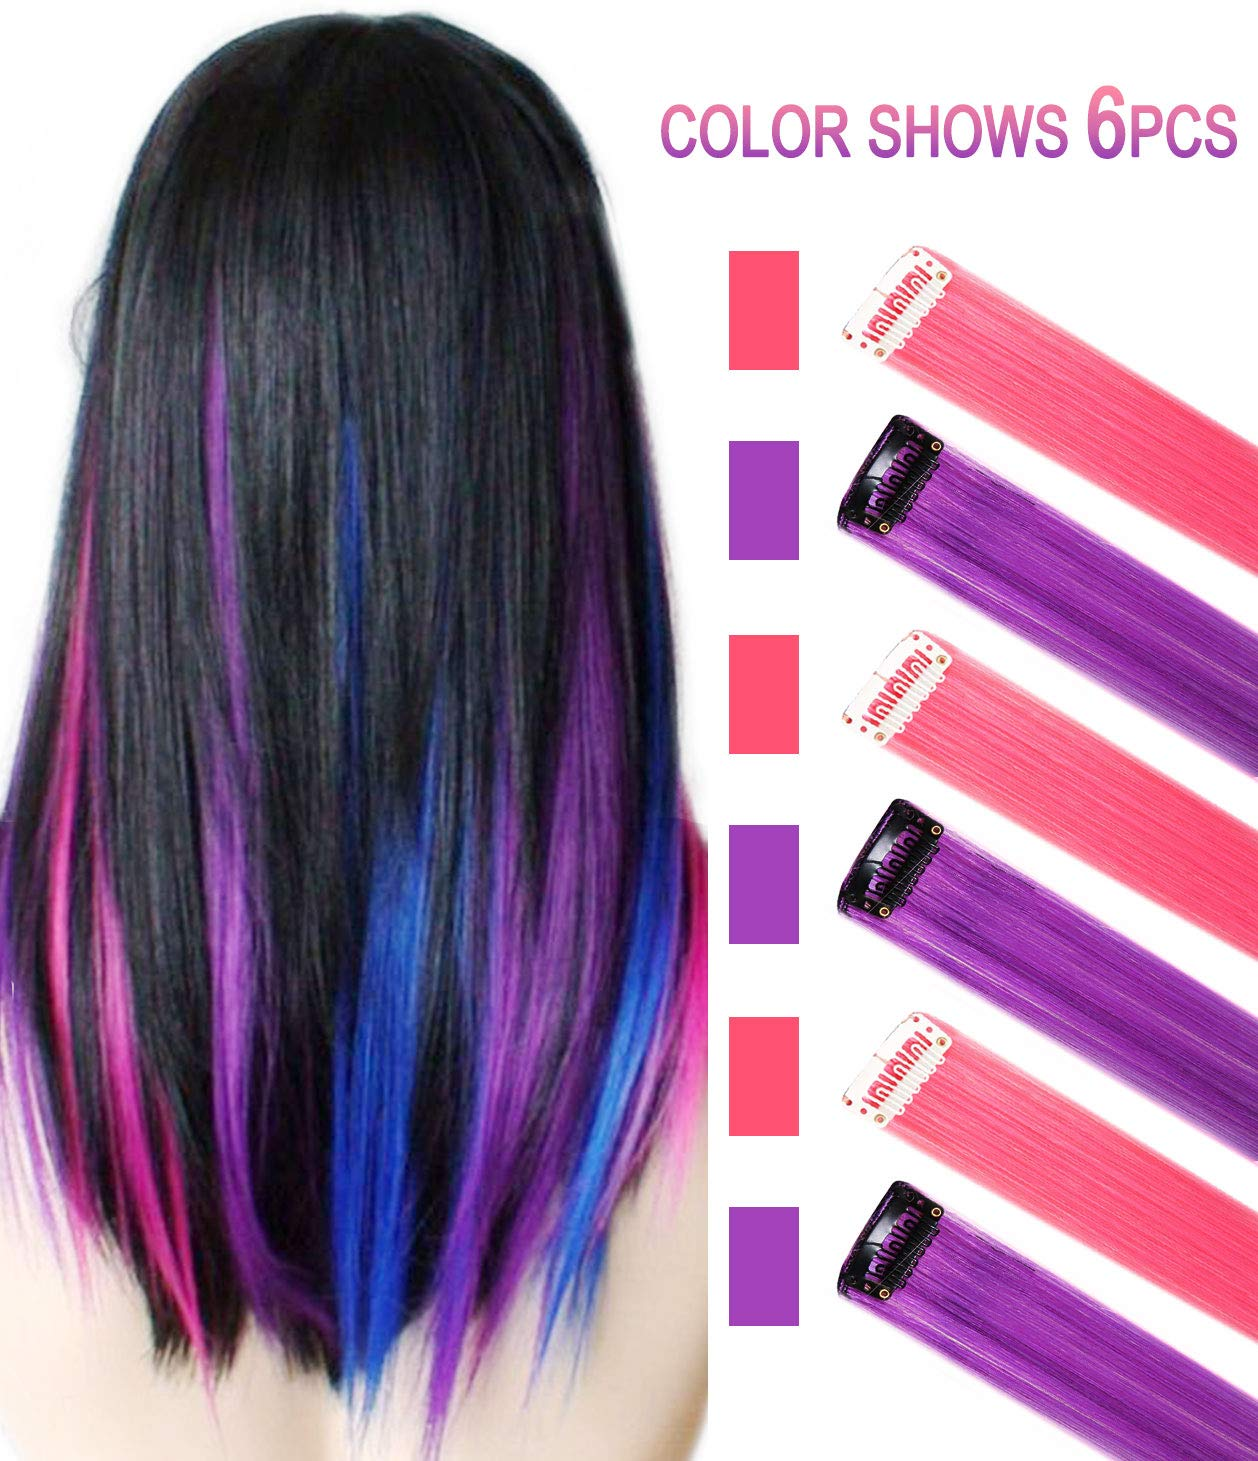 Purple Pink Hair Extensions Colored Party Highlights Straight Hair Extension Clip In On For Amercian Girls And Dolls Kids Costume Wig Pieces 6 Pcs